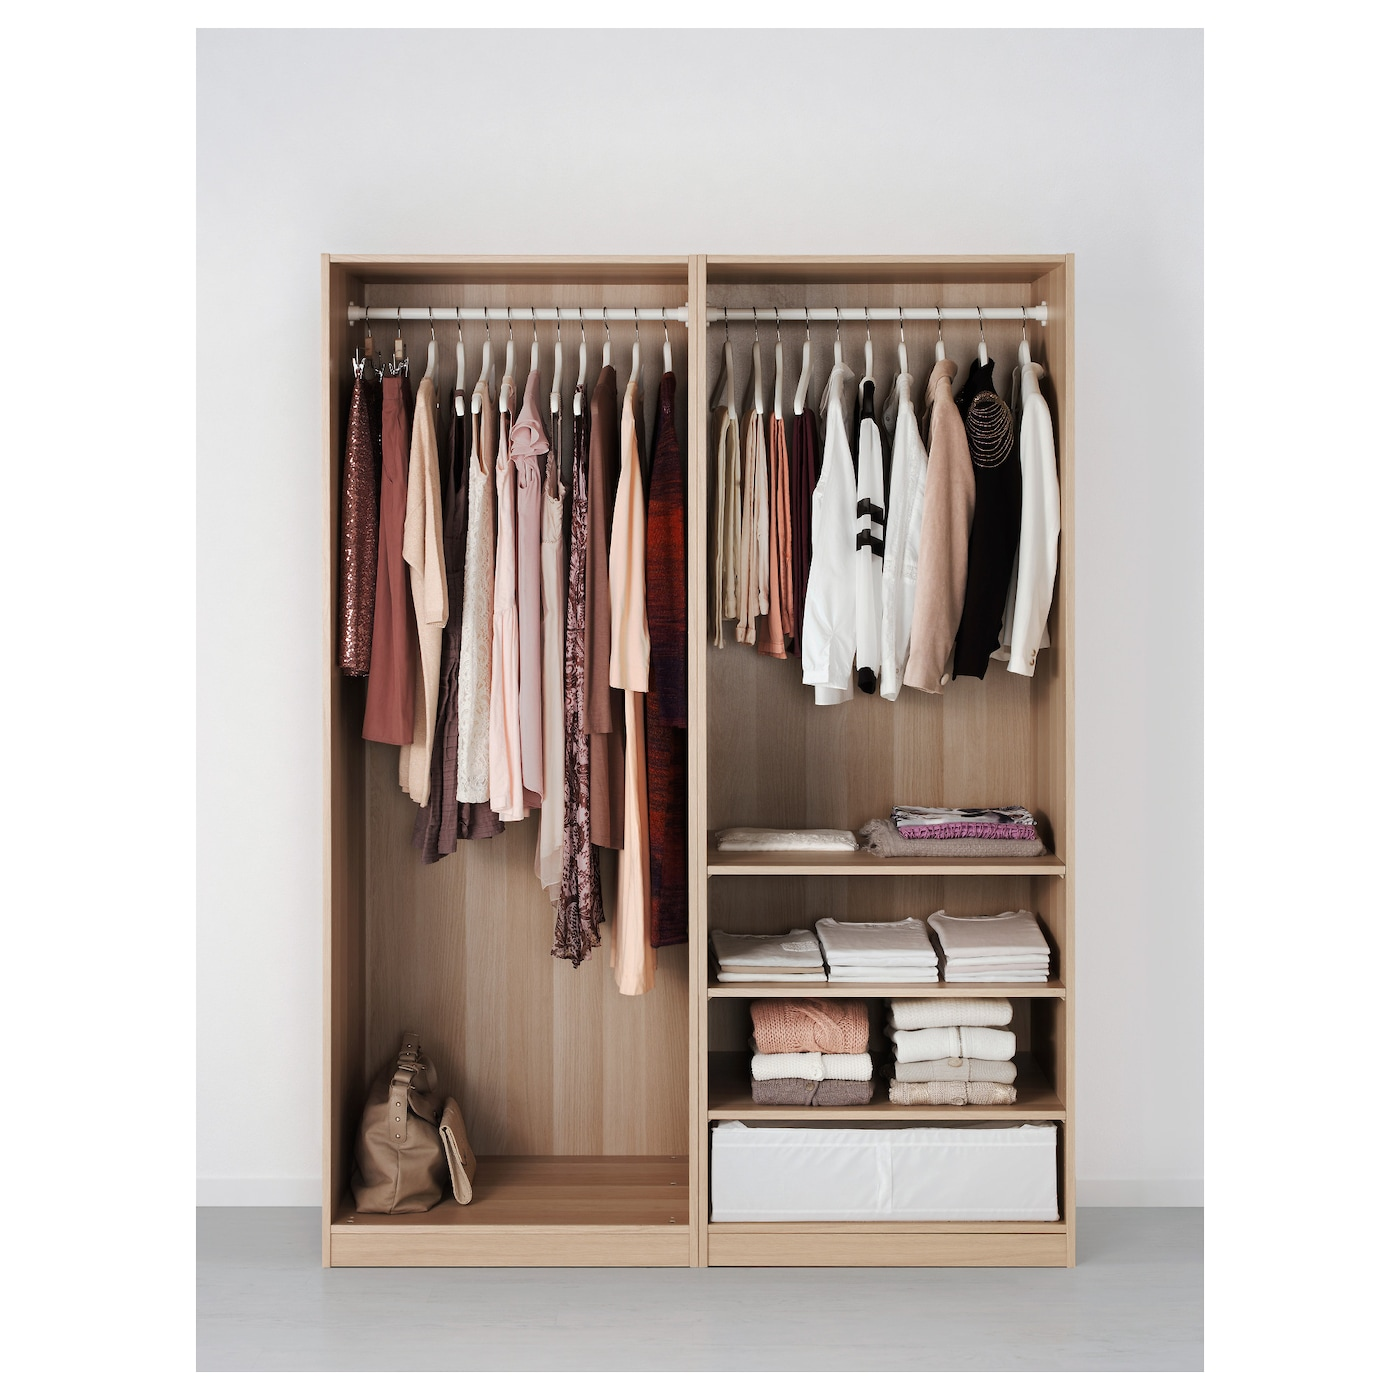 pax wardrobe white stained oak effect auli ilseng 150 x 66 x 201 cm ikea. Black Bedroom Furniture Sets. Home Design Ideas